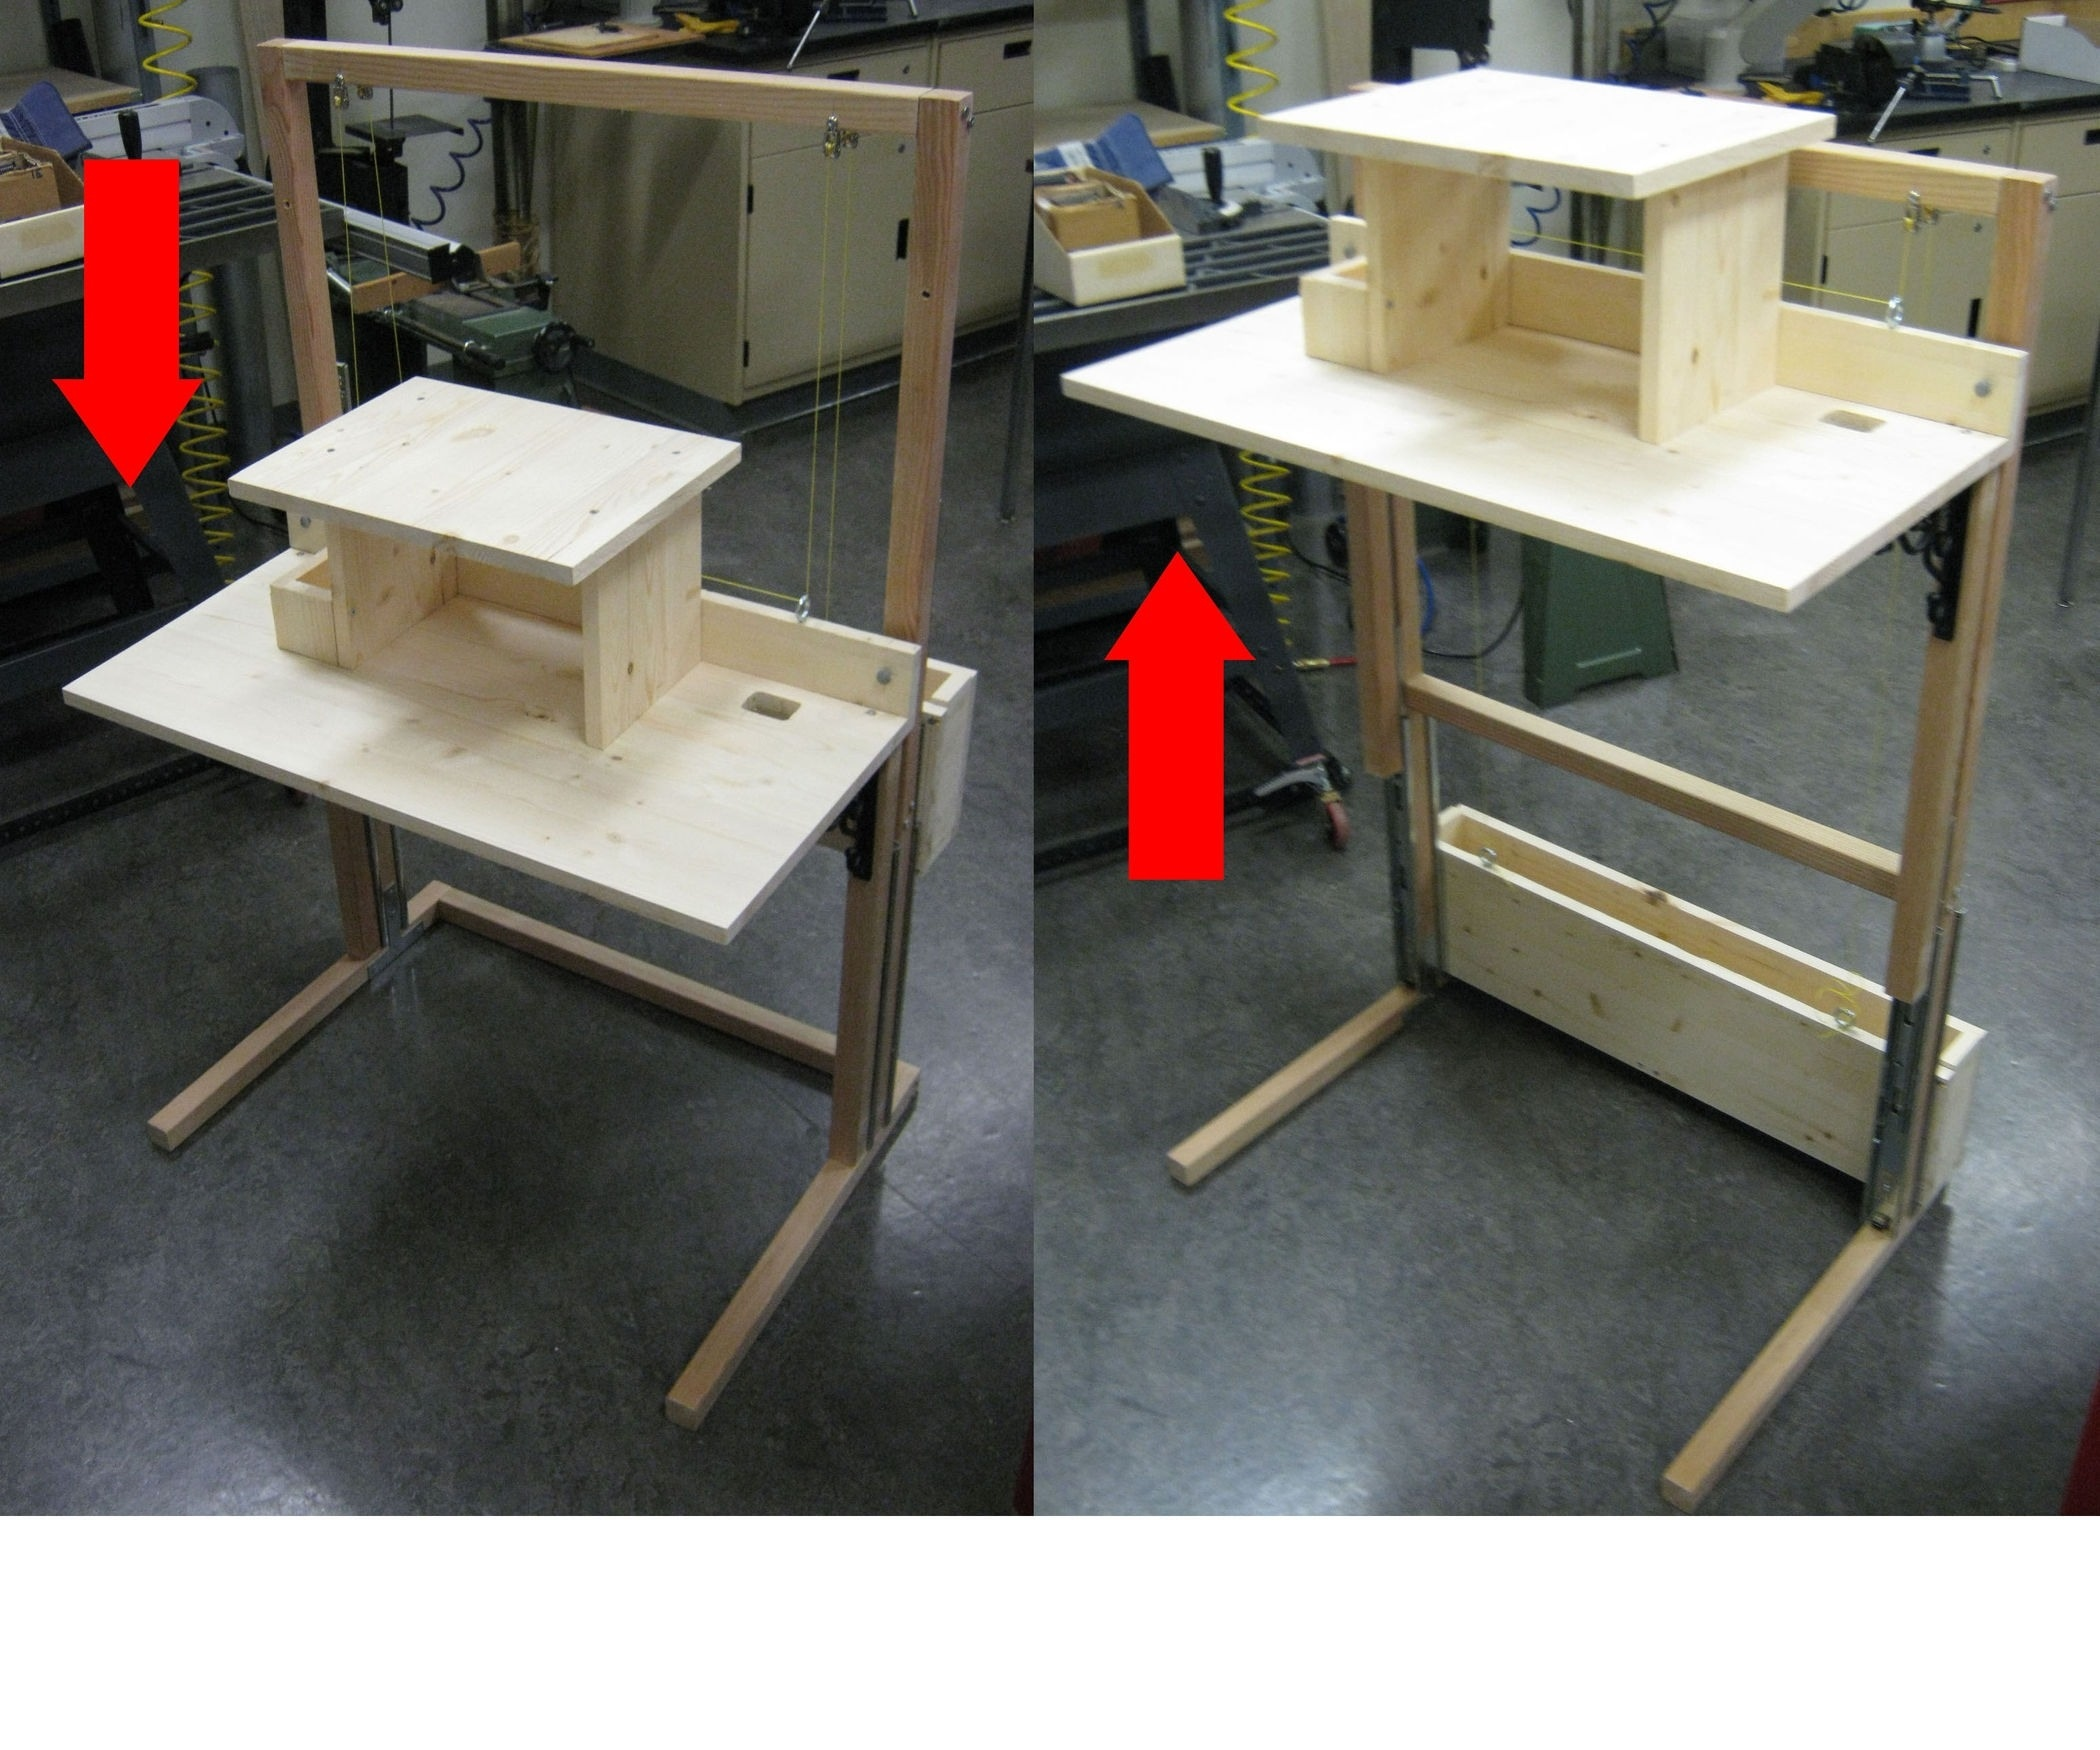 comdesk14 DIY computer desk ideas you could create now